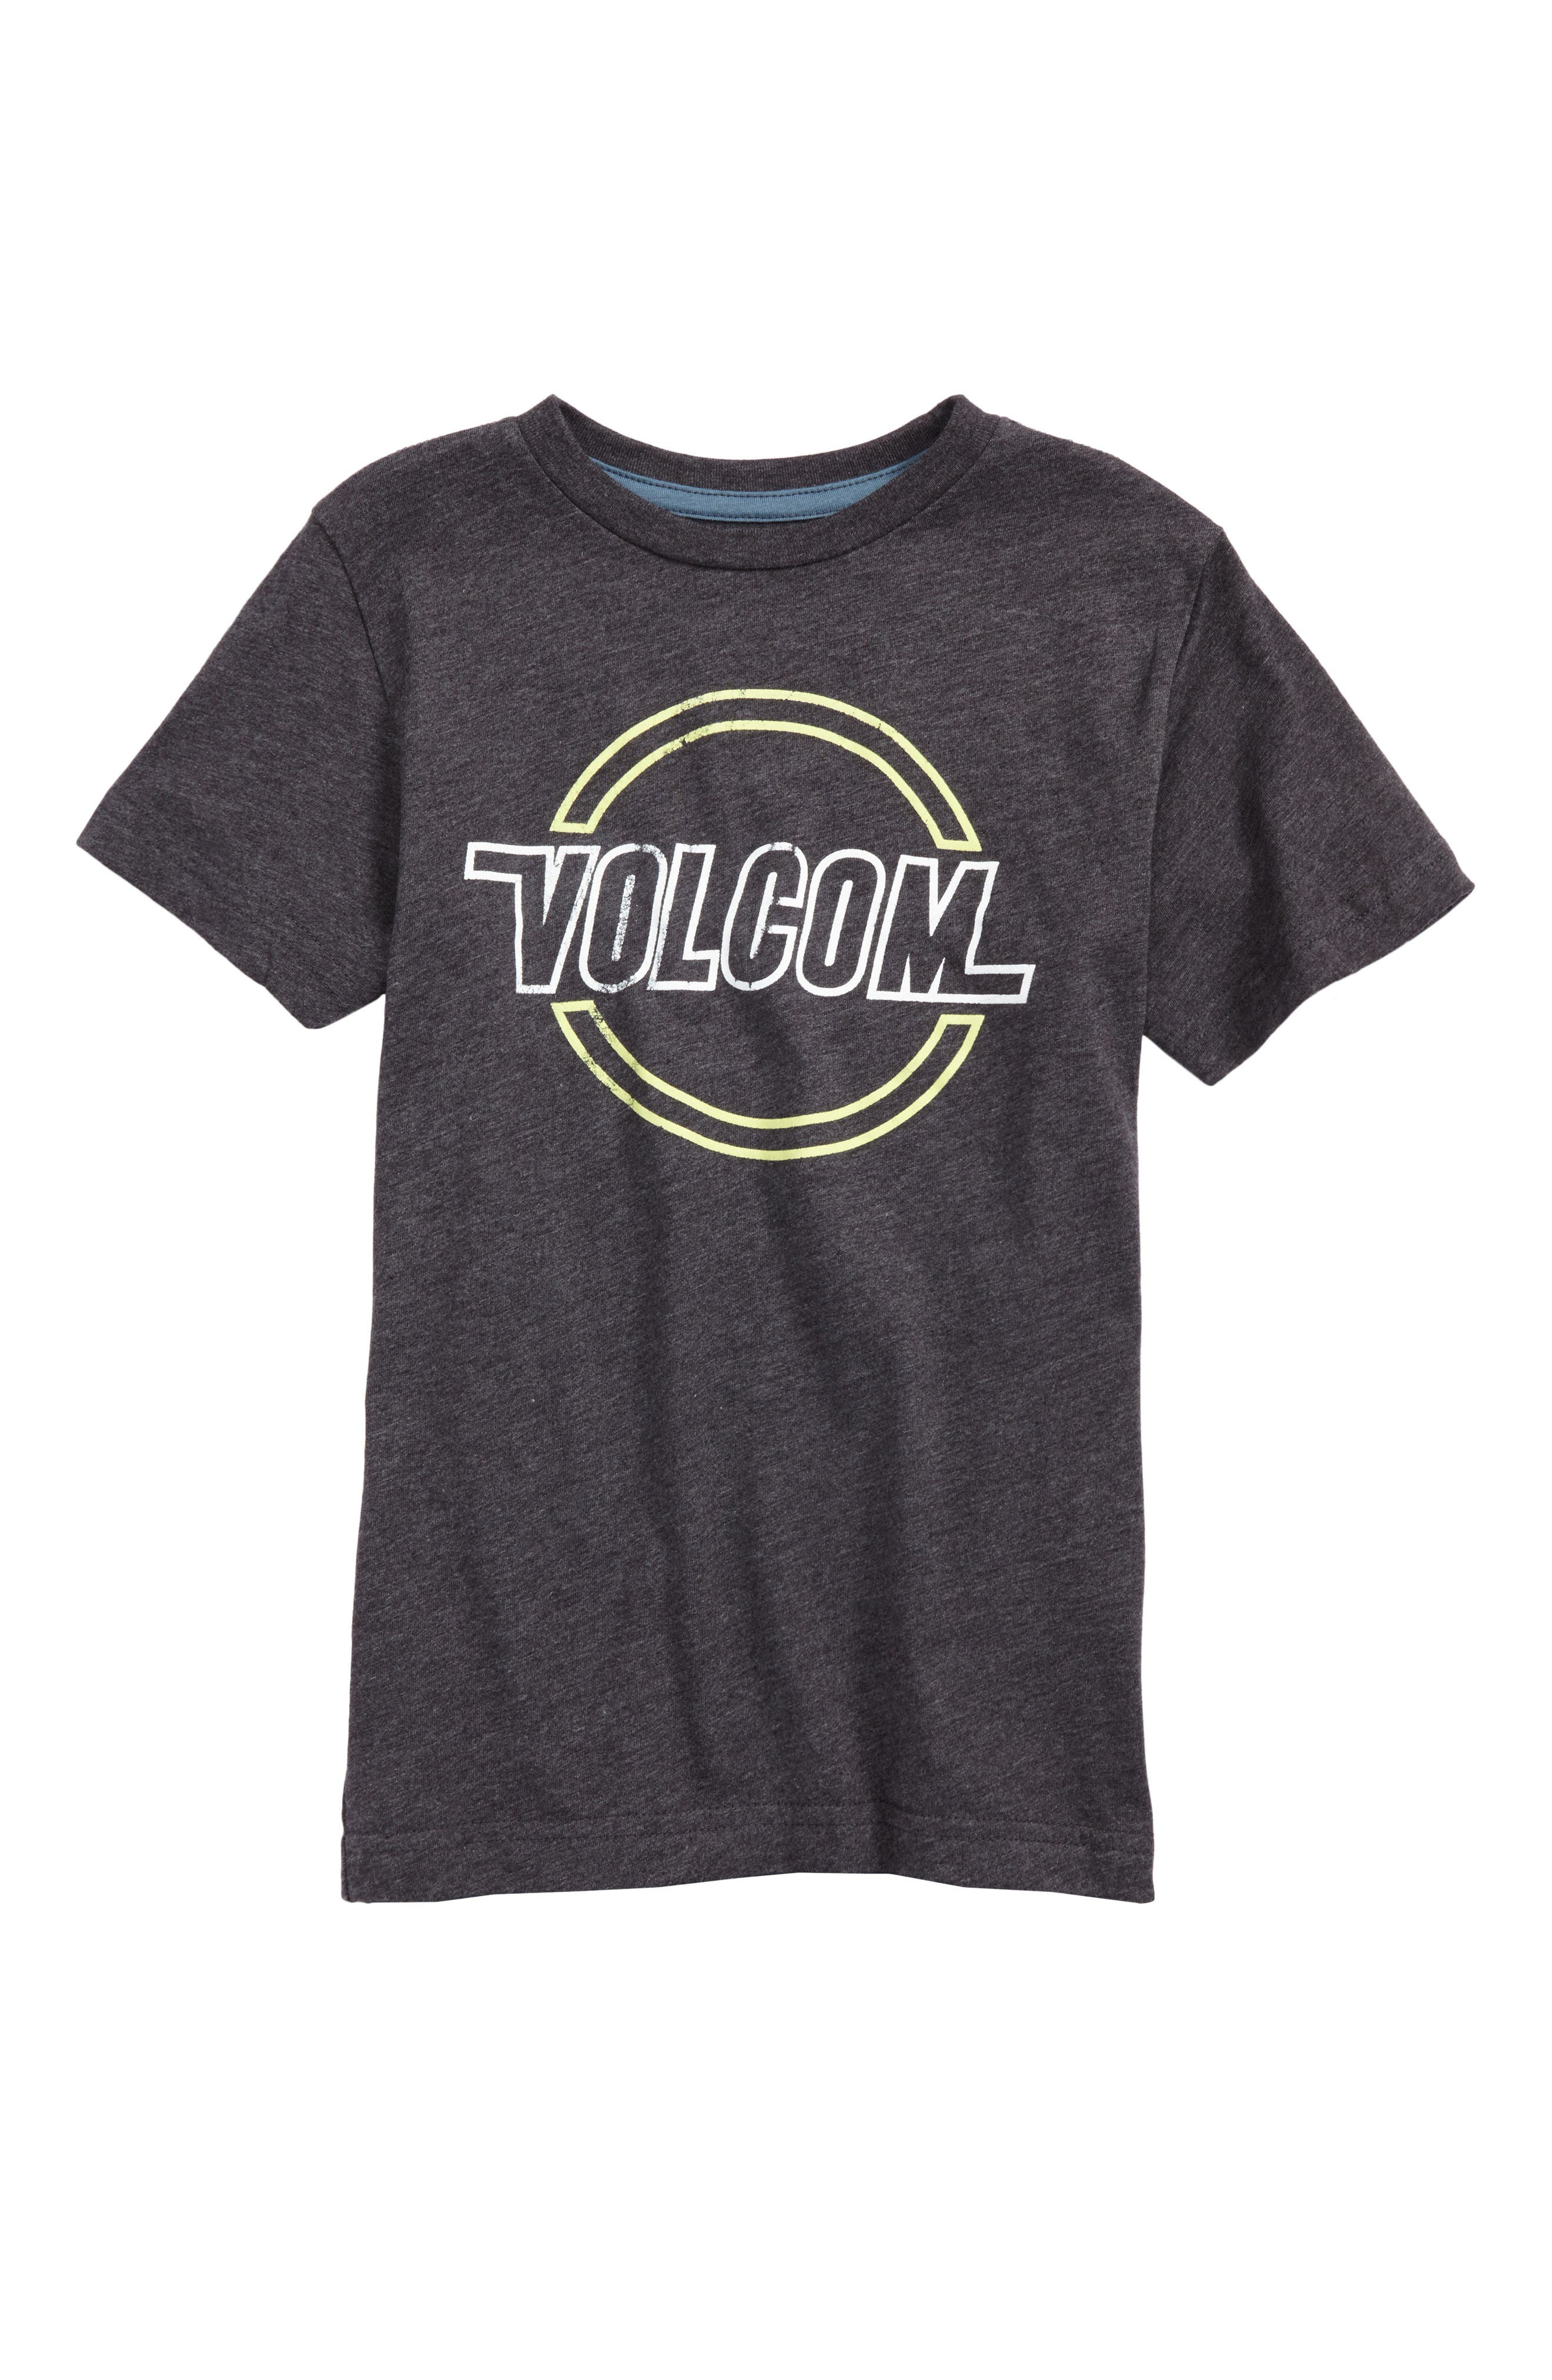 Main Image - Volcom Lo-Tech Logo Graphic T-Shirt (Toddler Boys & Little Boys)